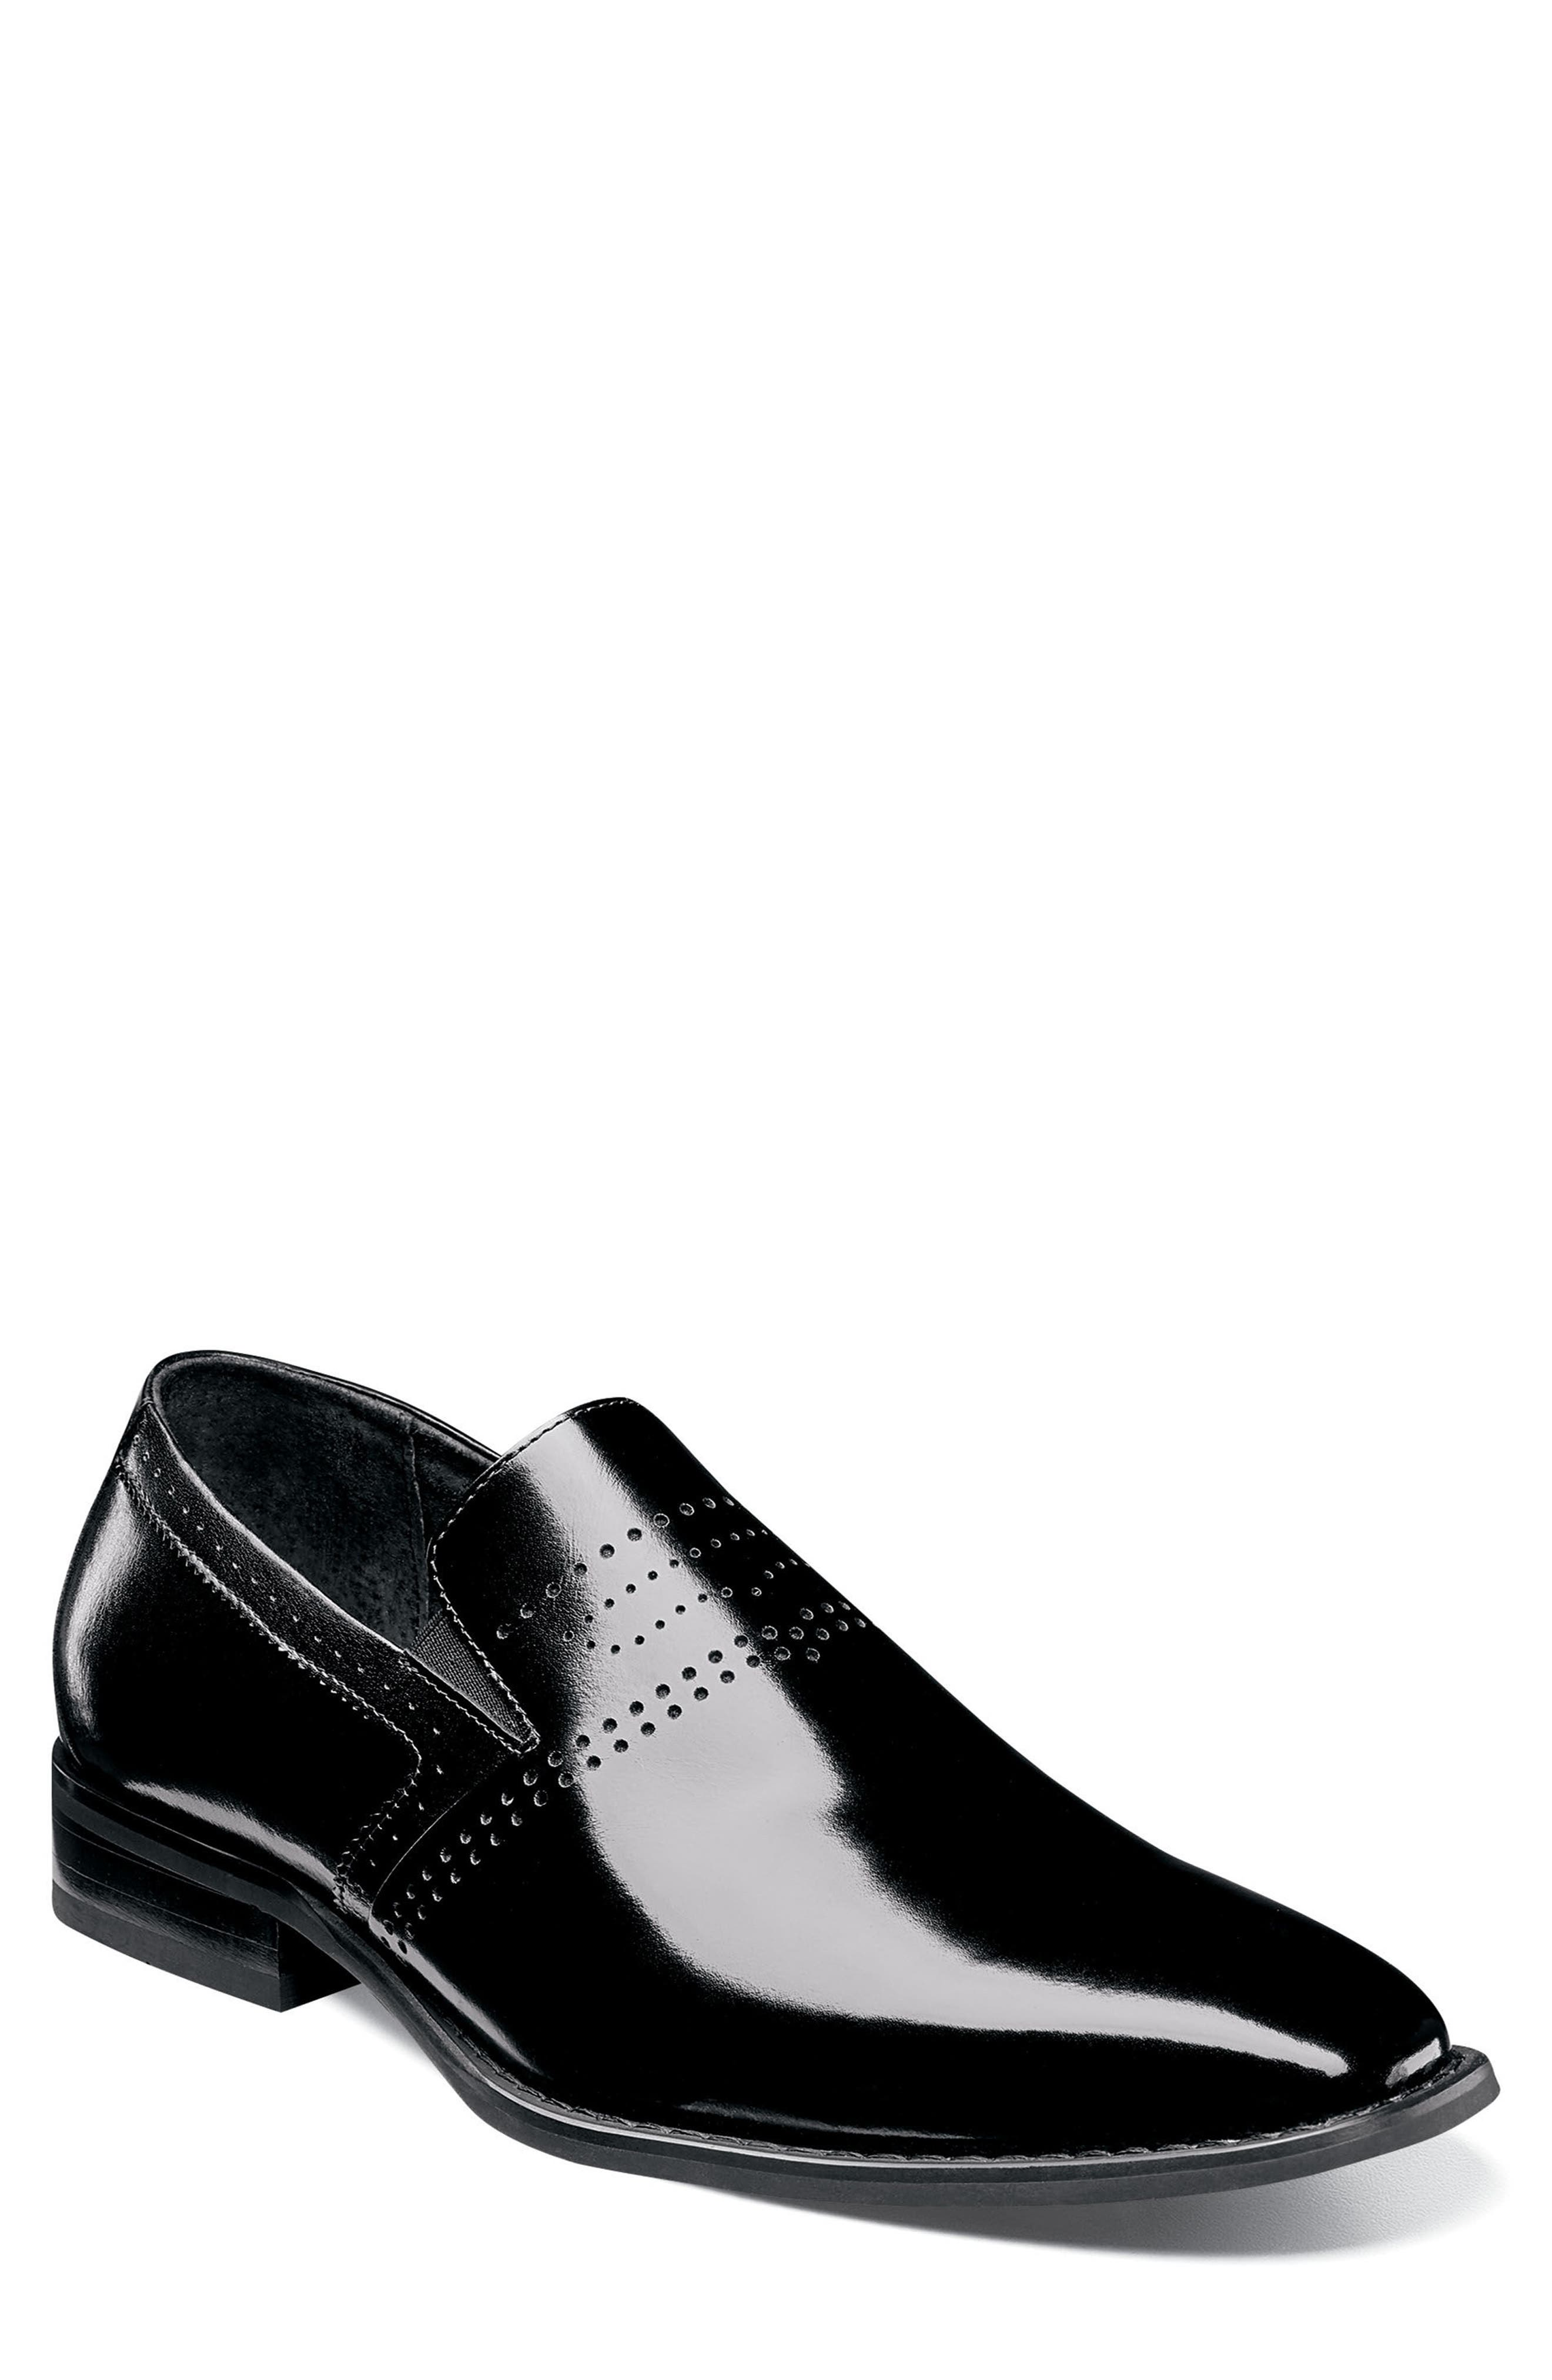 Saunders Perforated Venetian Loafer,                         Main,                         color, BLACK LEATHER